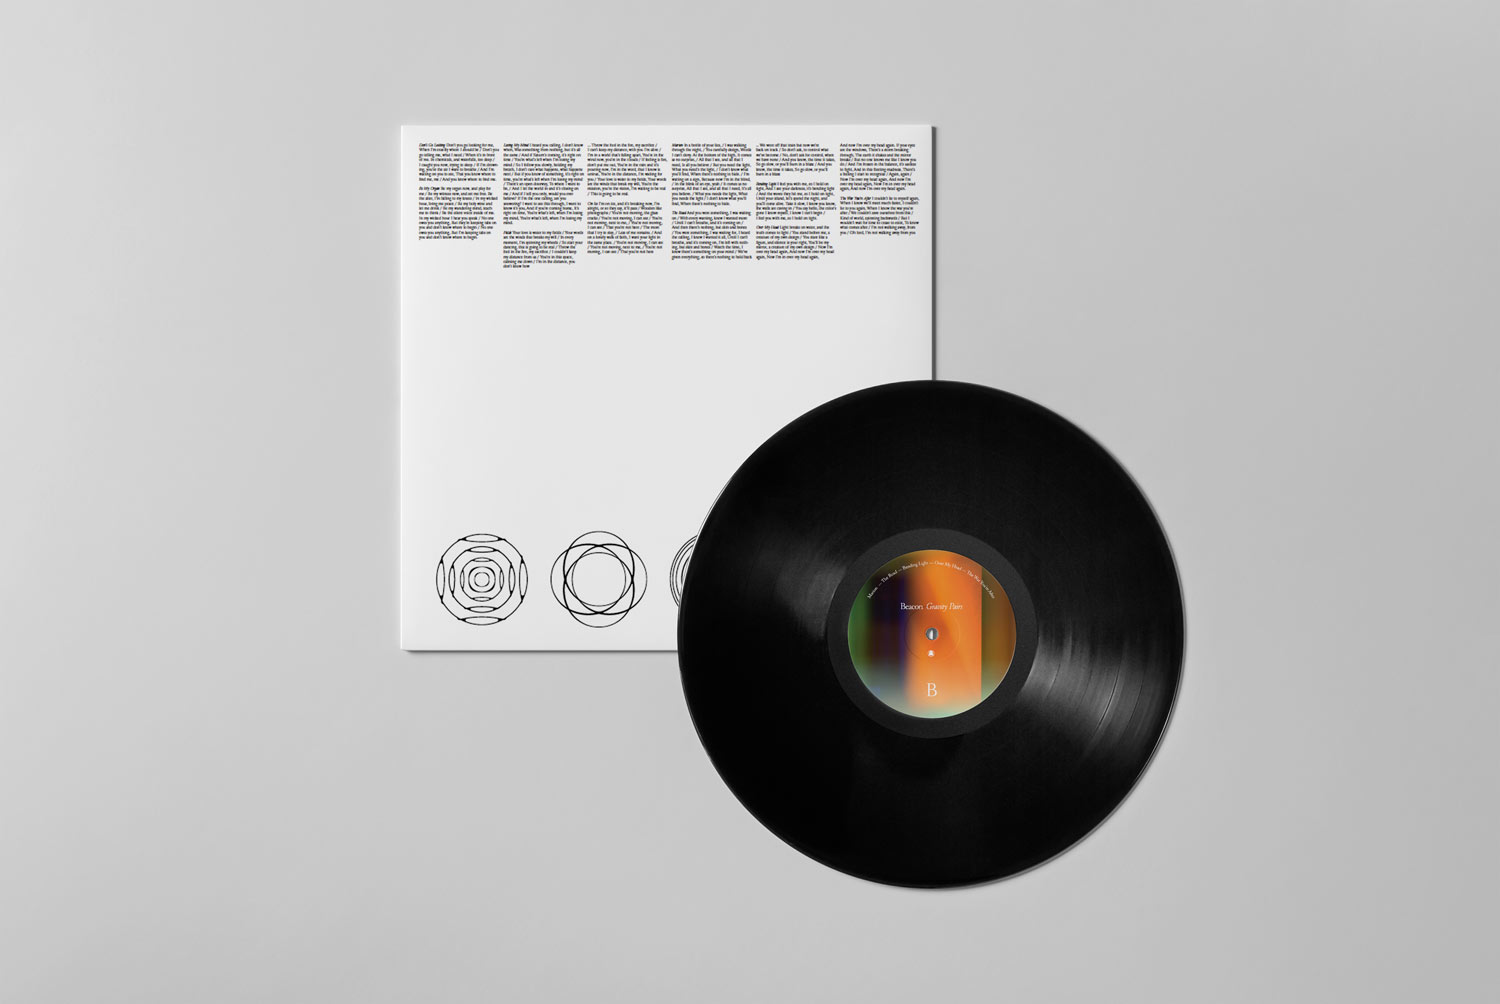 06_Vinyl-Mock-up_box-&-vinyl_top-view-2.jpg